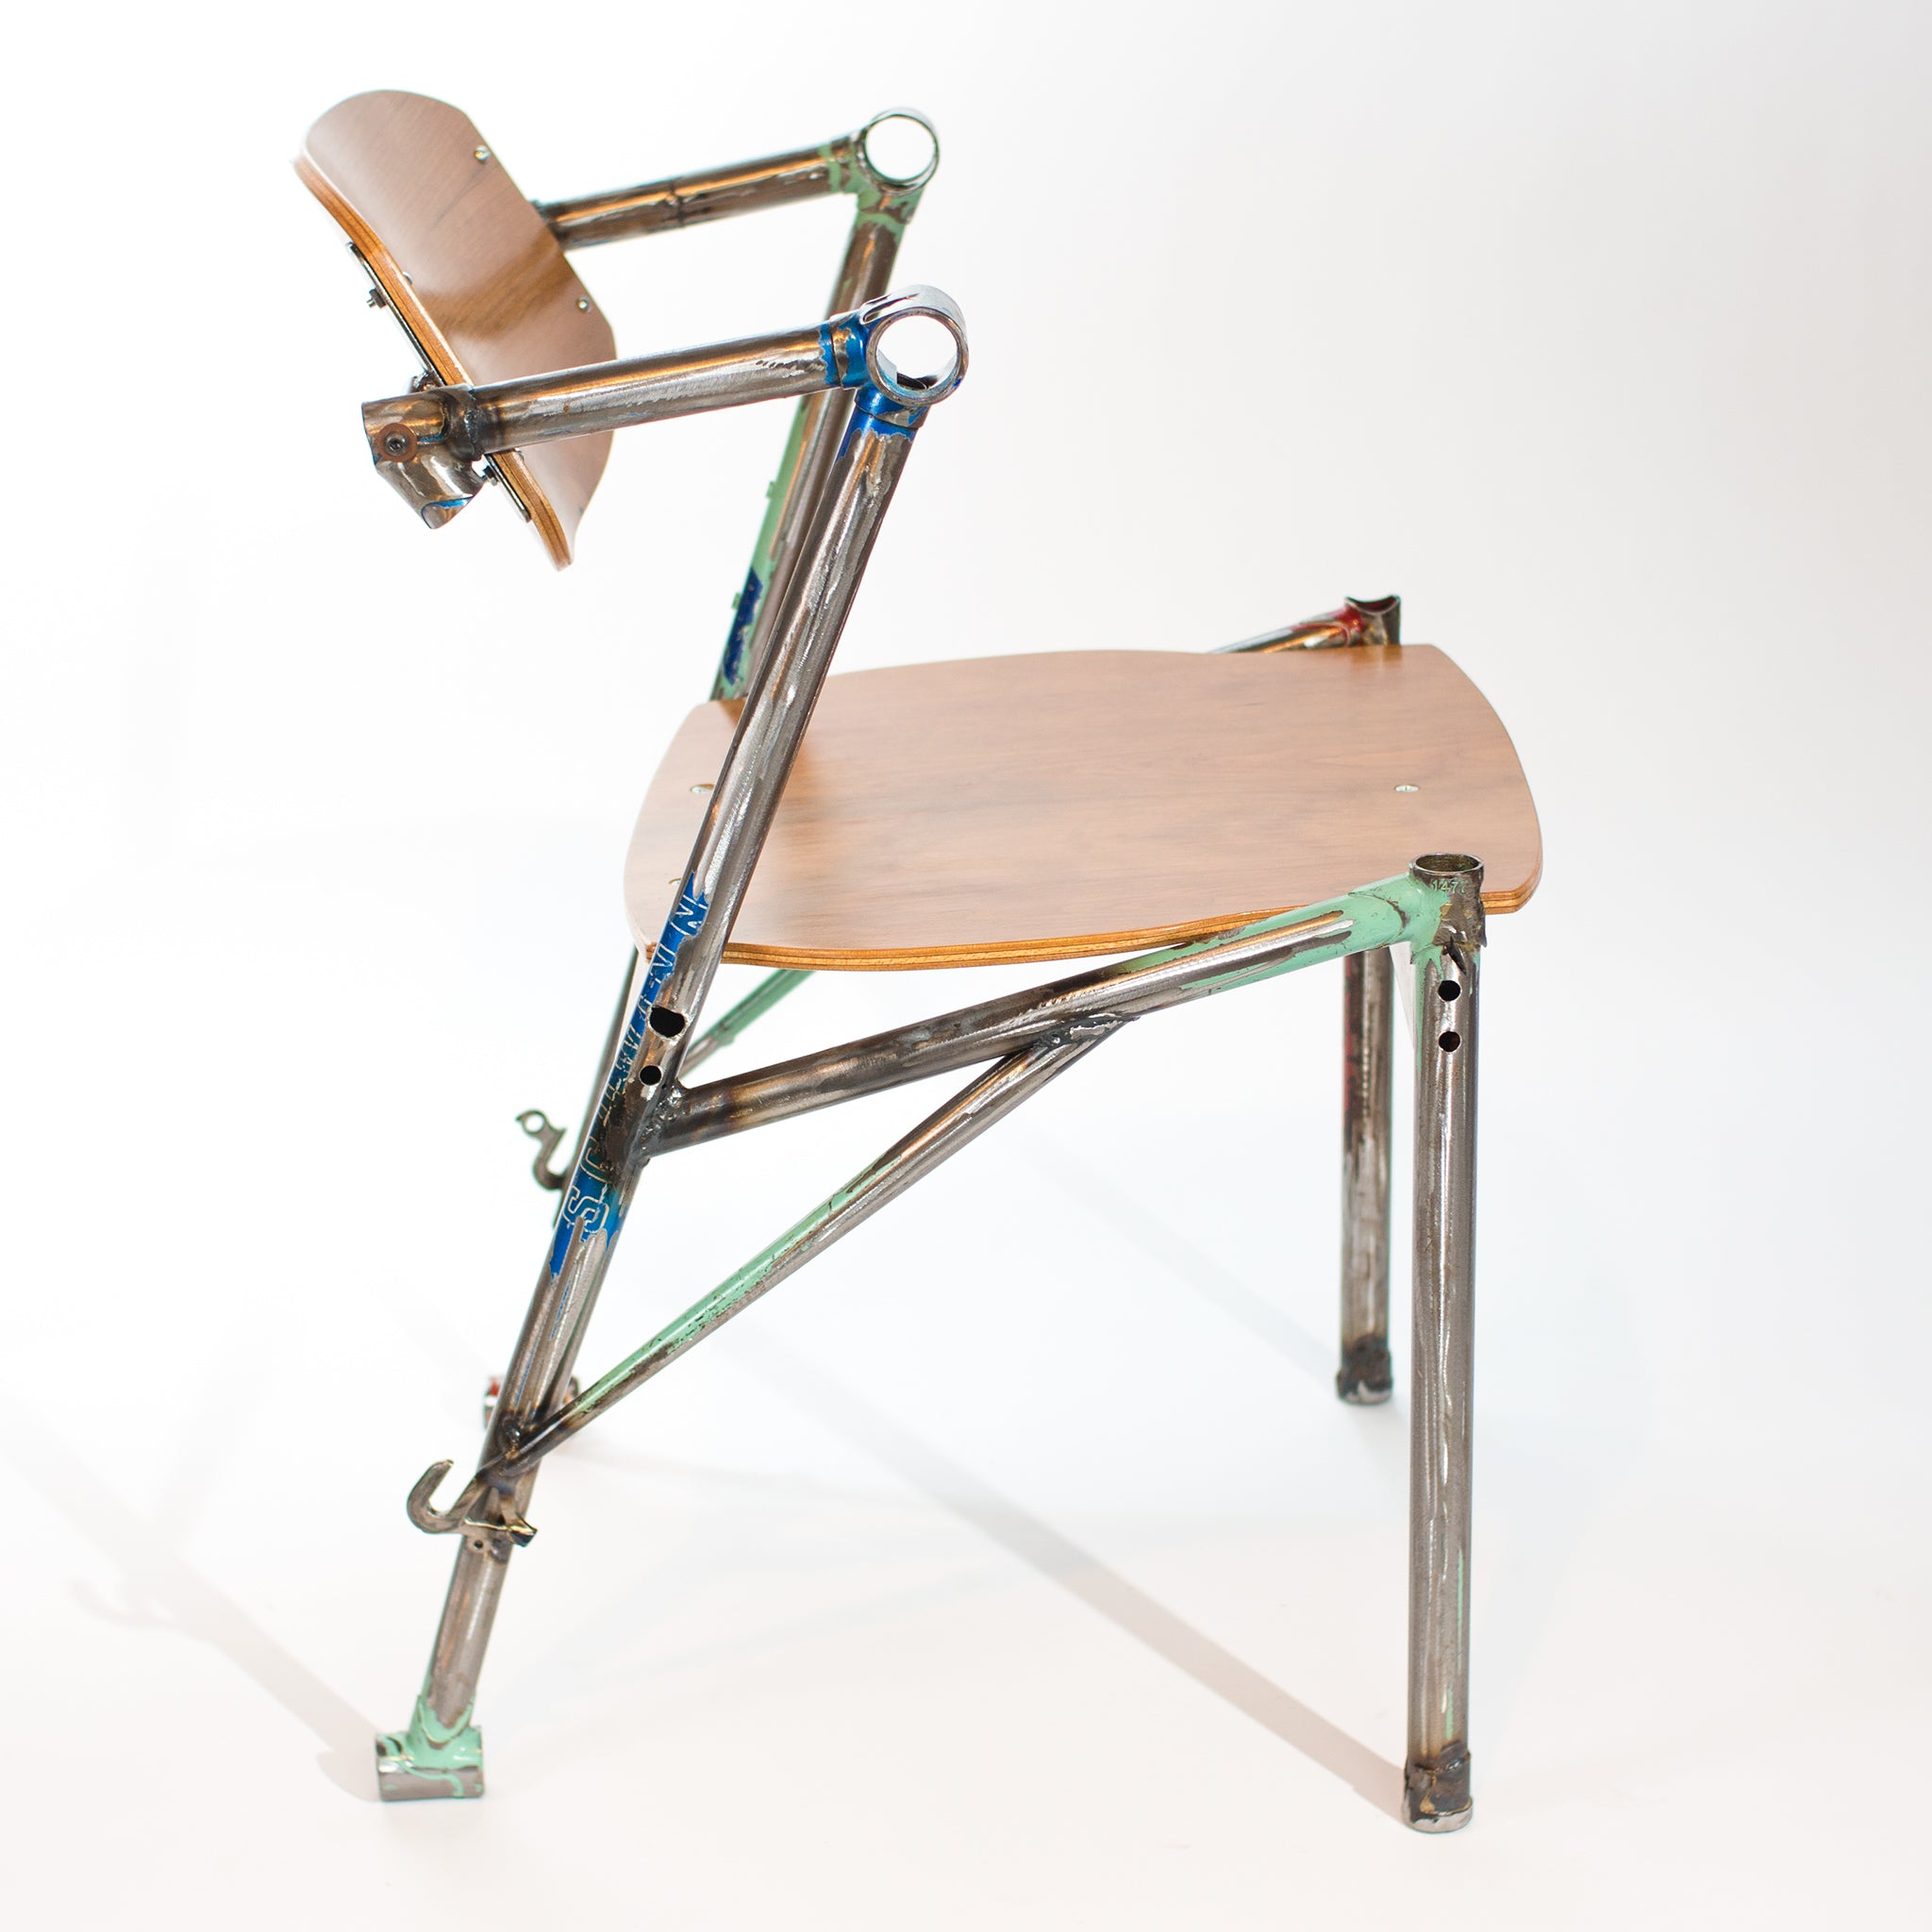 ... Eric Blanpied Furniture - Bike-Z Chair Bicycle Frames and Bent Plywood ...  sc 1 st  Eric Blanpied Furniture & Eric Blanpied Furniture - Bike Z Chair Recycled Bicycle Frames and ...